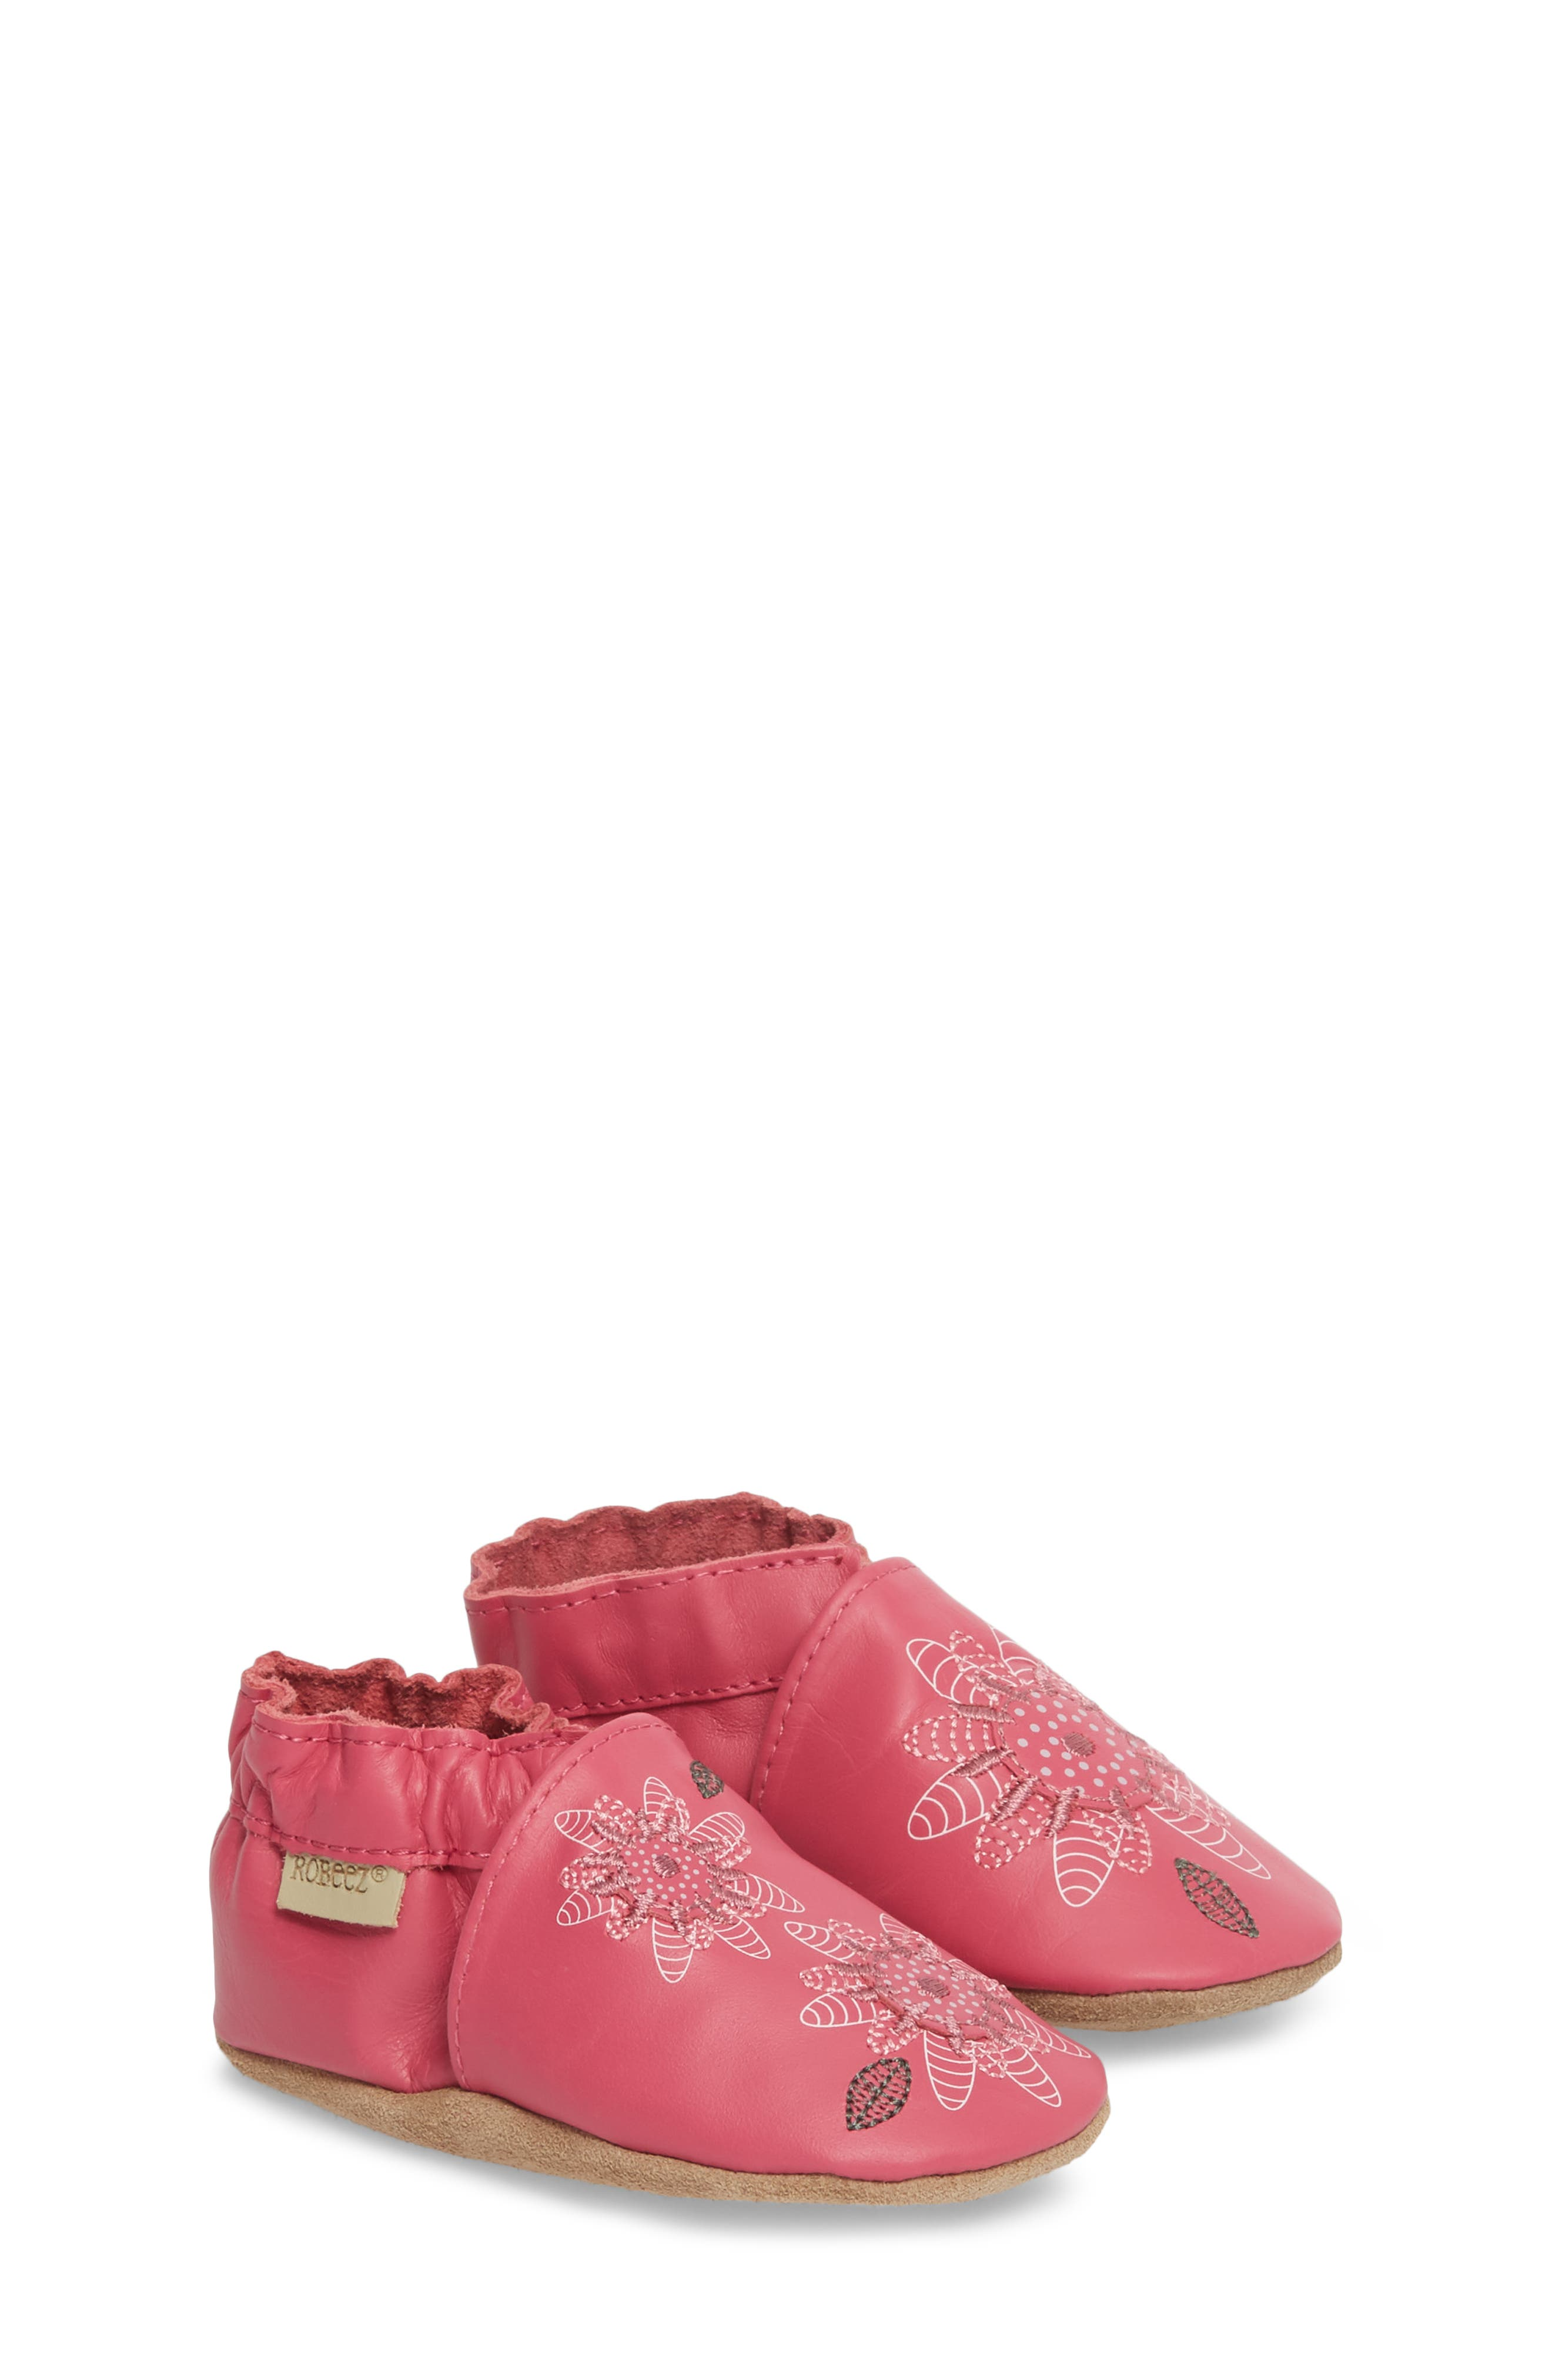 ROBEEZ<SUP>®</SUP>, Fiona Flower Moccasin Crib Shoe, Main thumbnail 1, color, HOT PINK